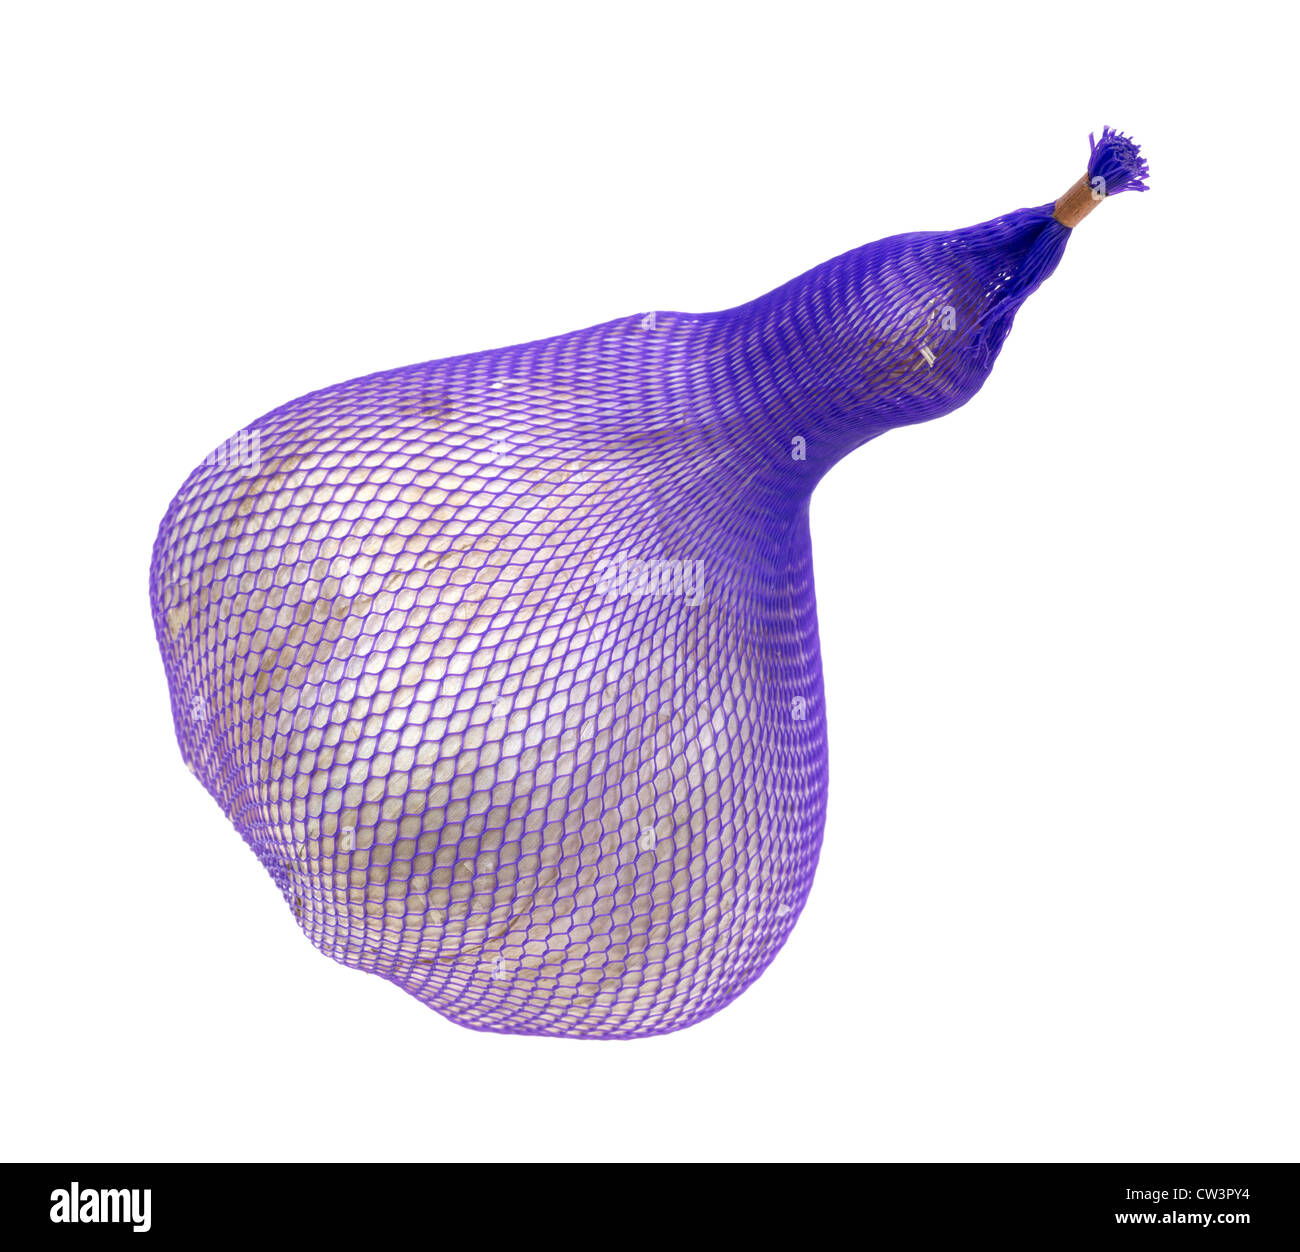 Elephant garlic in purple plastic packaging - Stock Image